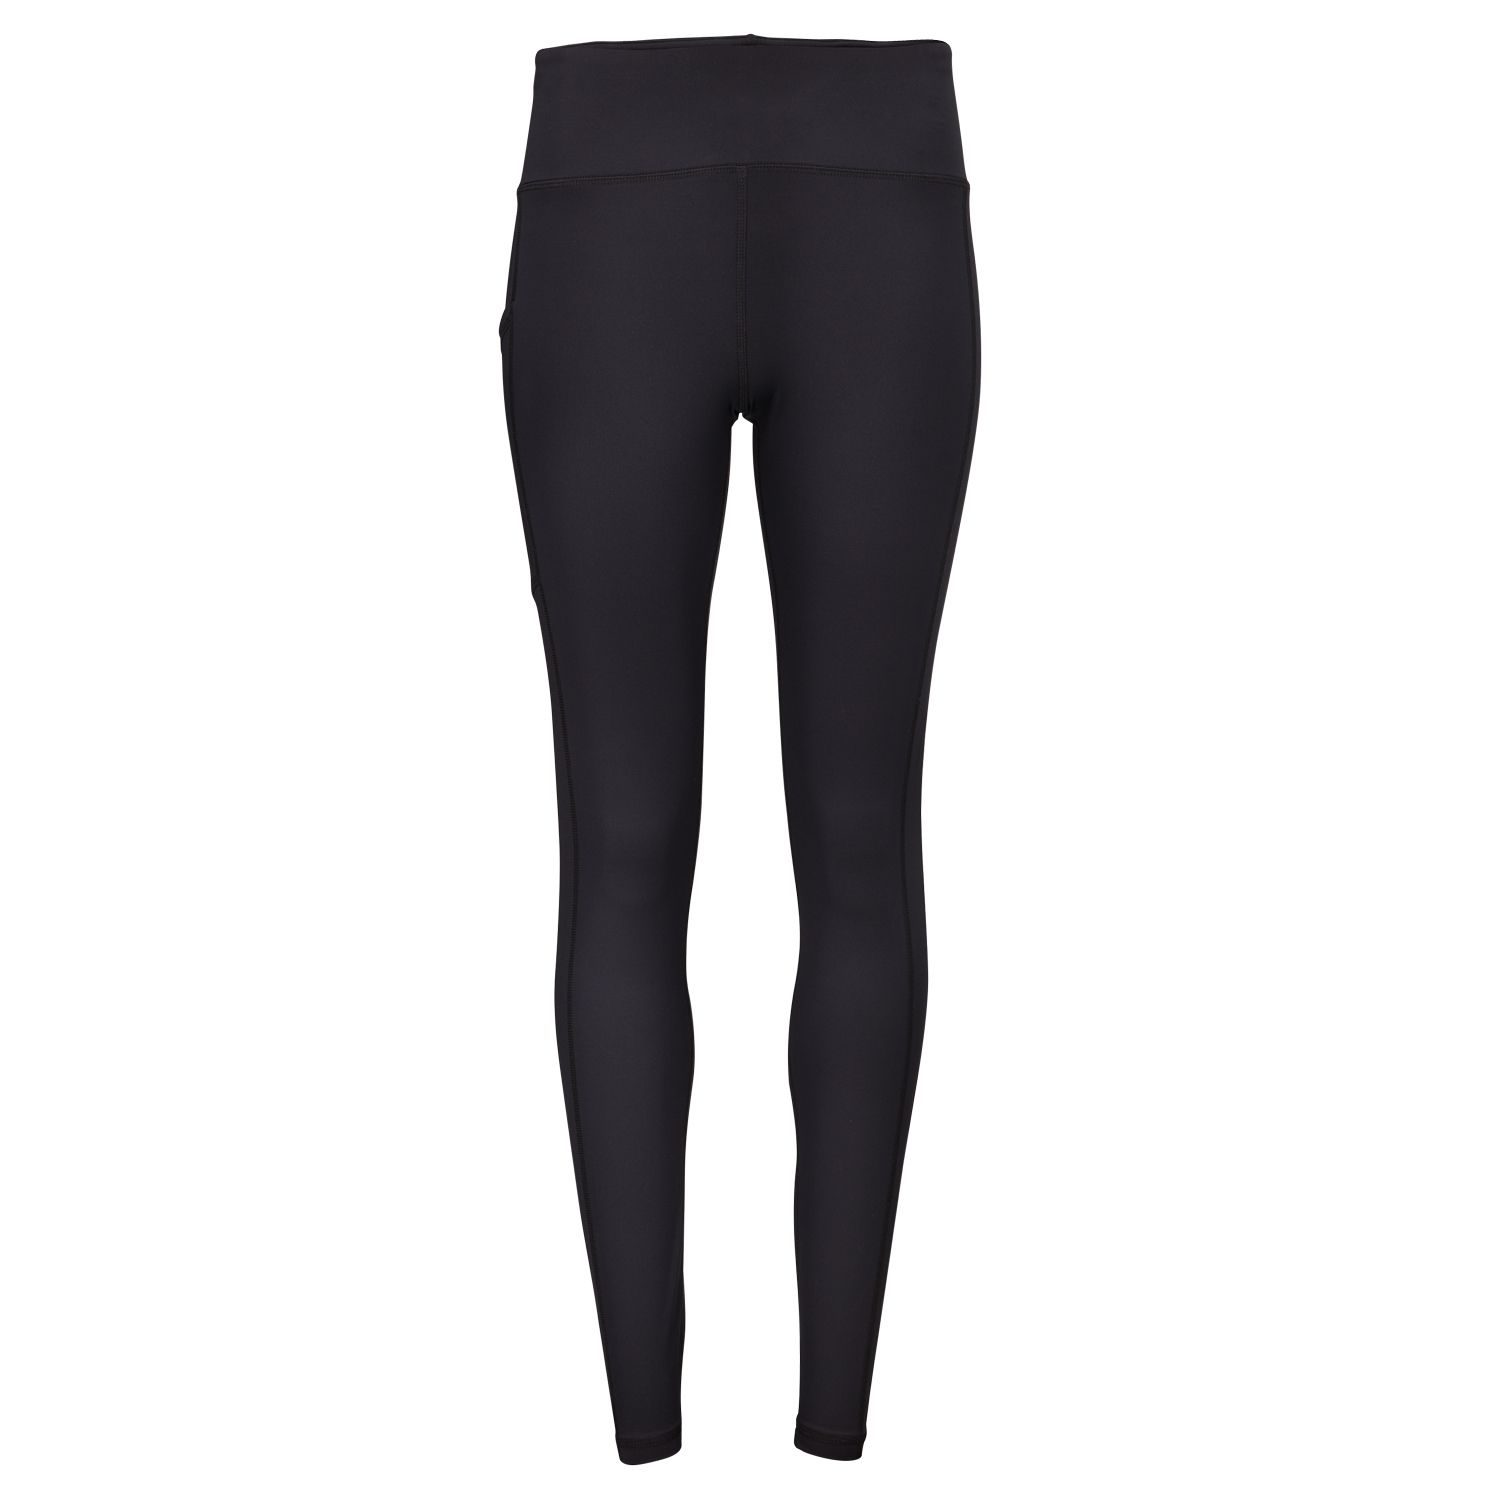 crane® Fitness-Tights*